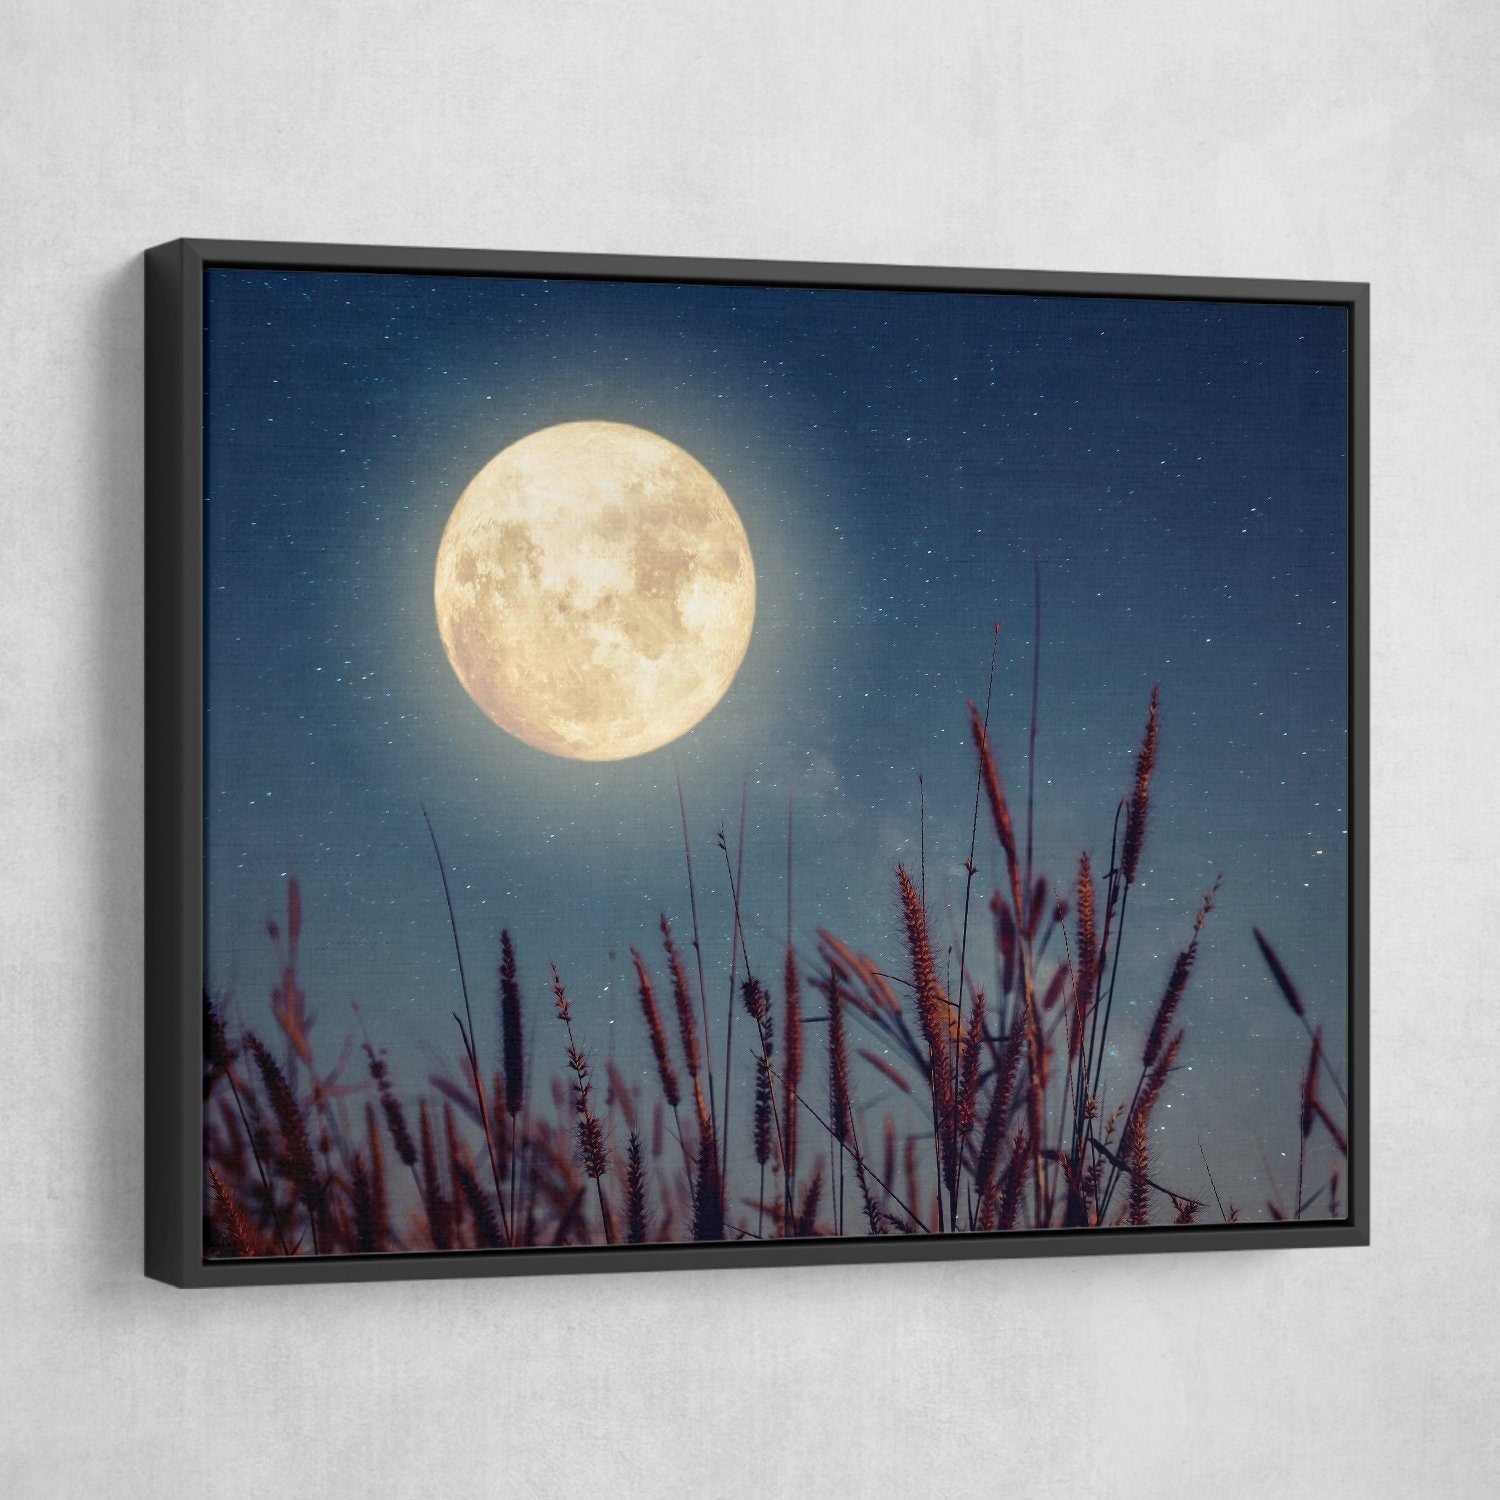 Flowers and moonlight wall art black frame